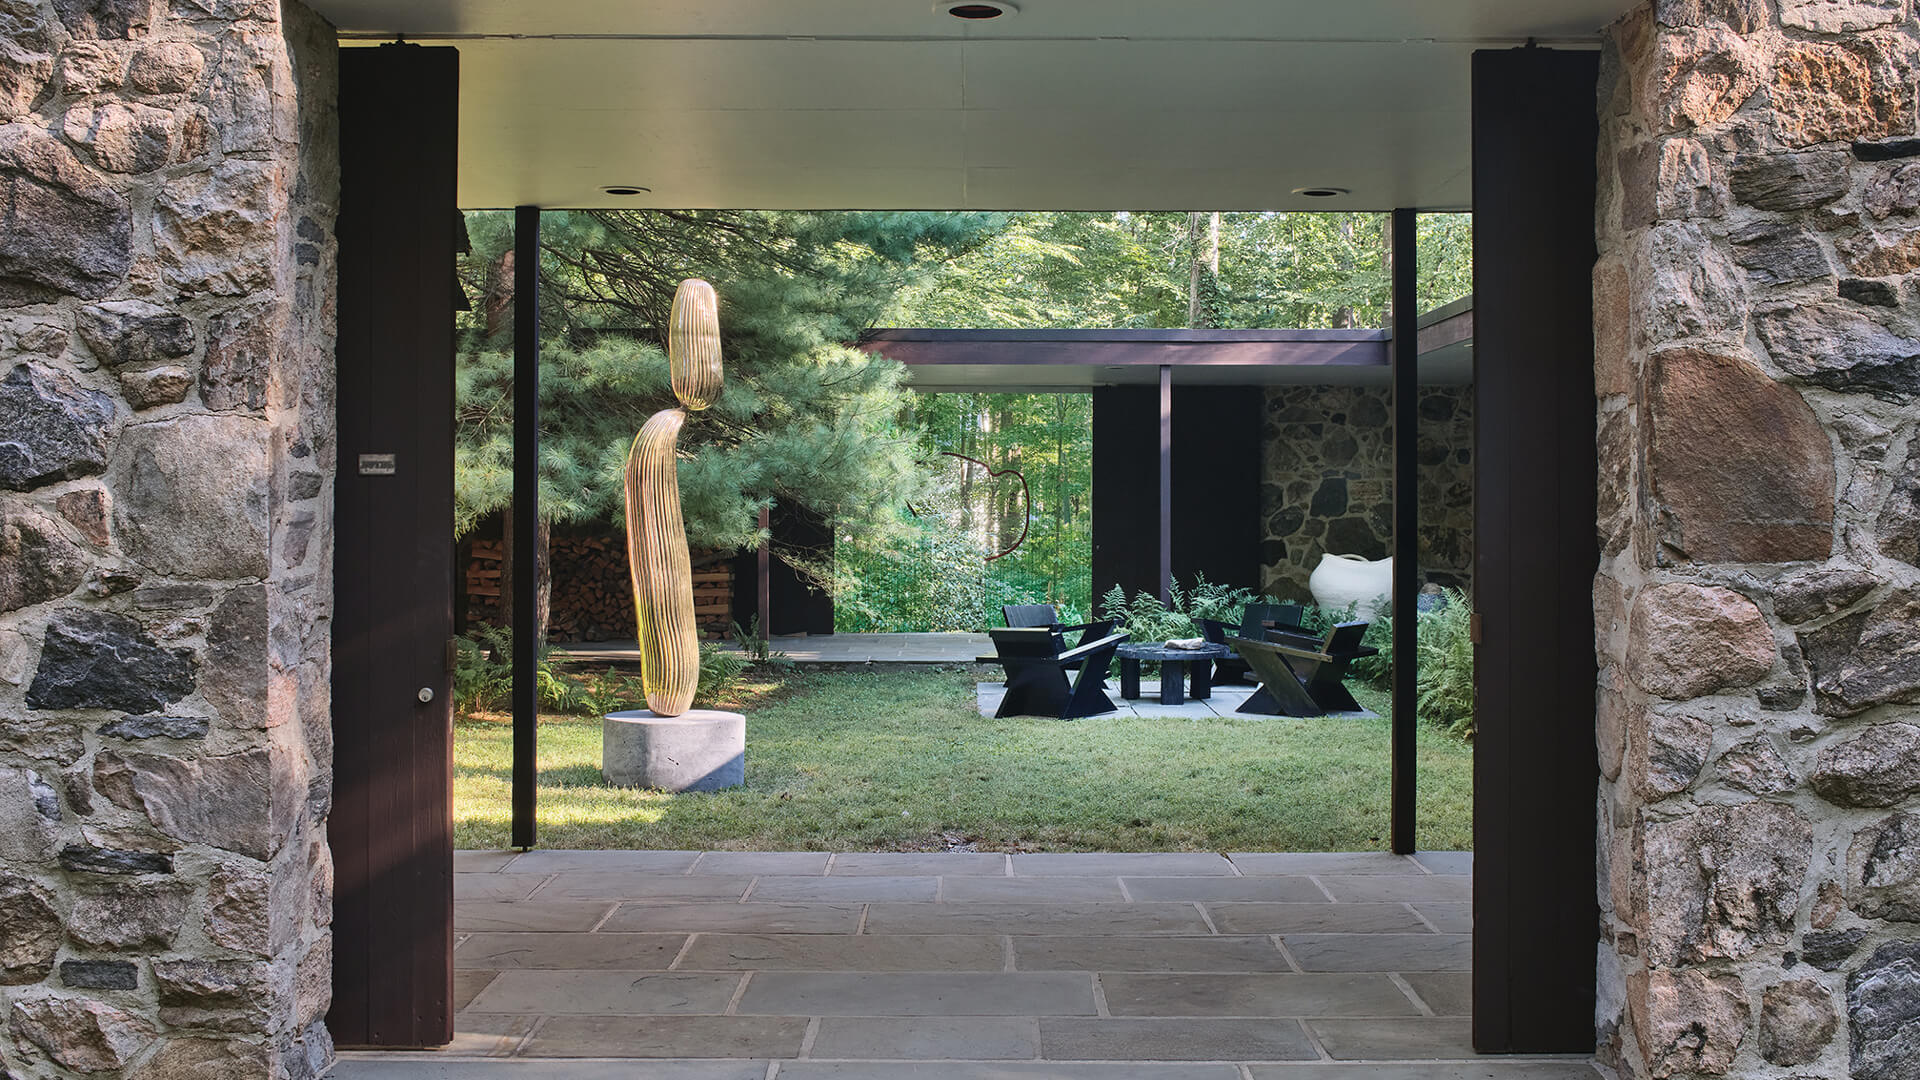 Collaborative art and design exhibition at the Noyes House uses the iconic house as a contemporary display setting | At The Noyes House | Object & Thing, Blum & Poe, Mendes Wood DM | STIRworld